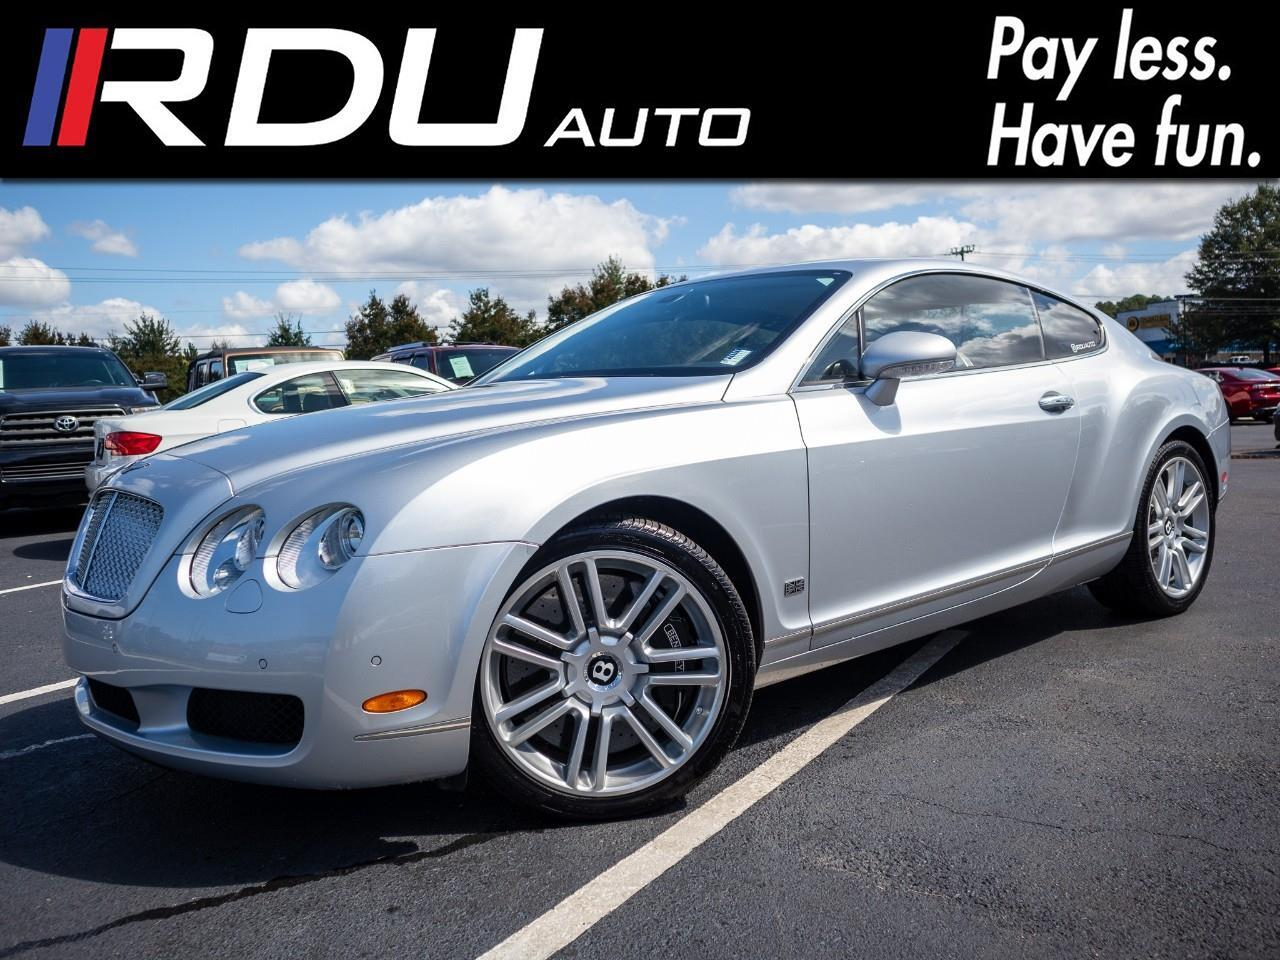 2007 Bentley Continental GT Diamond Series